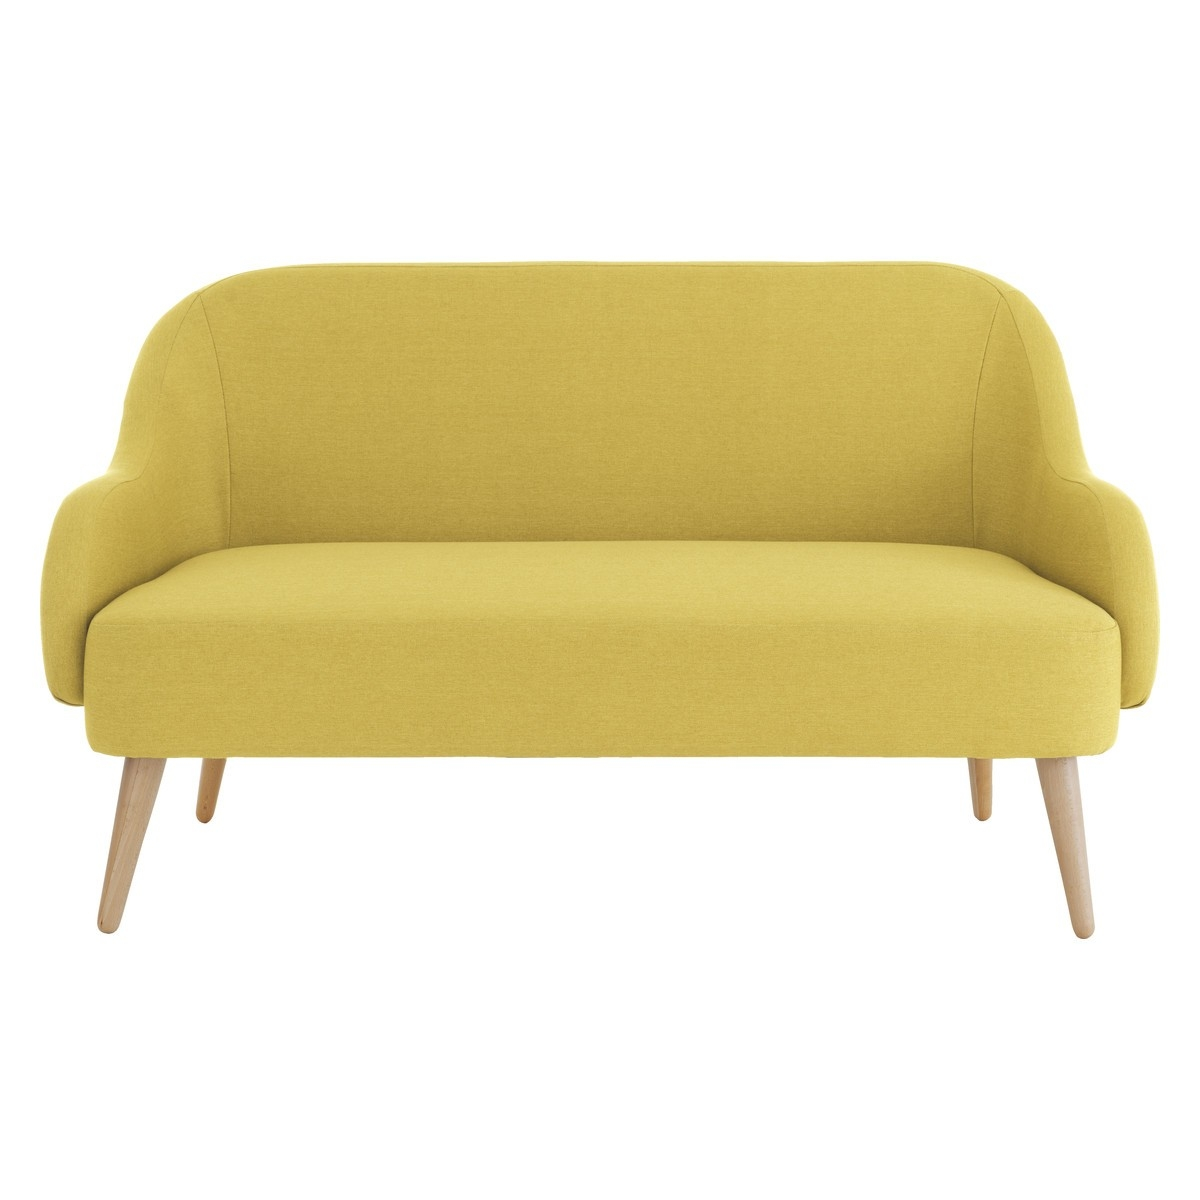 Momo Saffron Yellow Fabric 2 Seater Sofa Yellow Fabric With Small 2 Seater Sofas (Image 6 of 15)